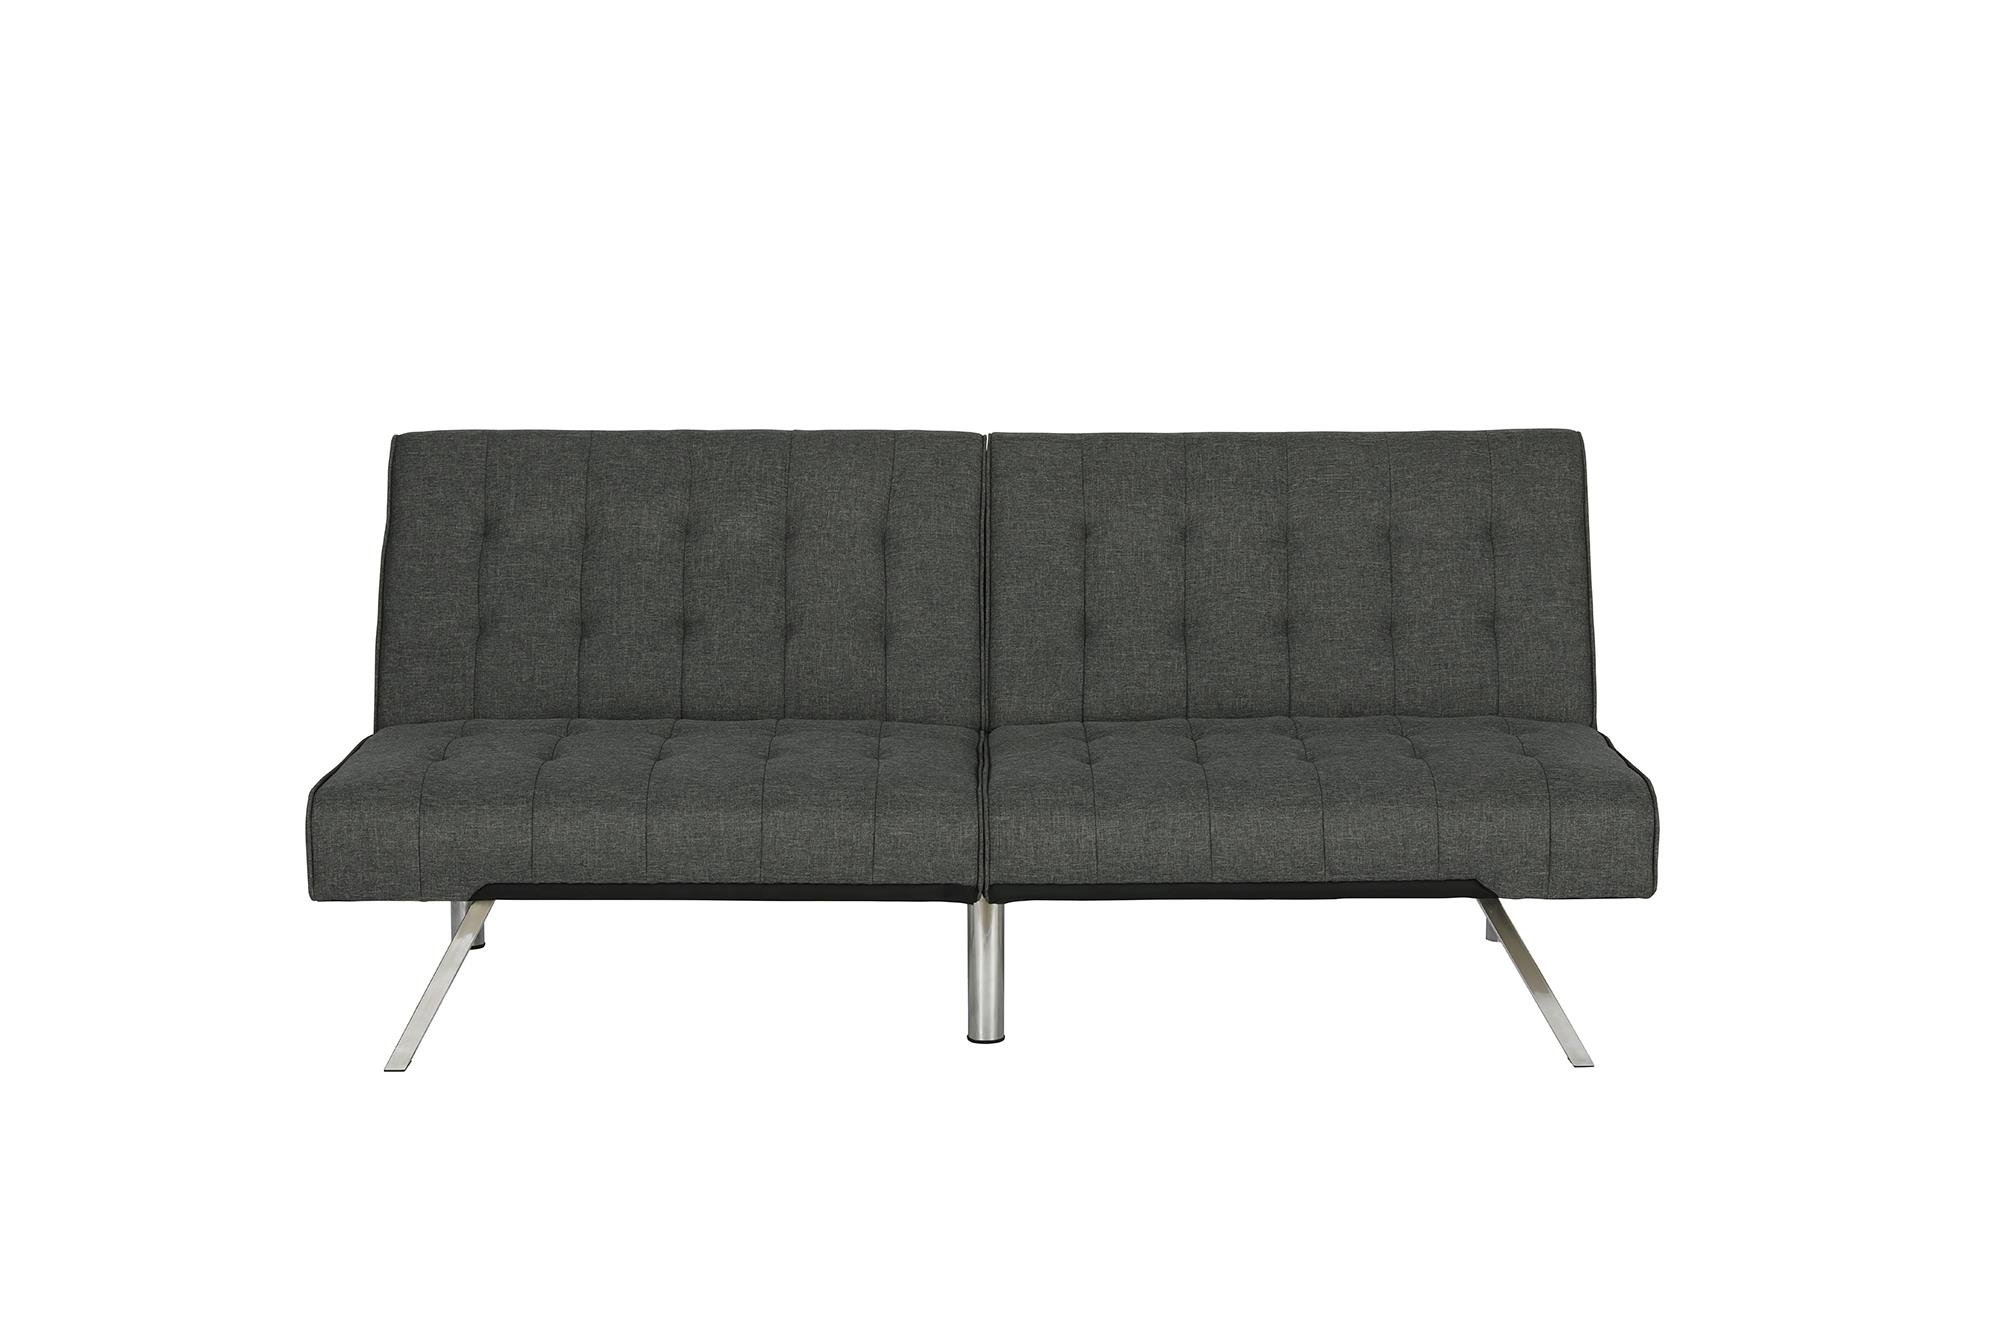 master futons cfm pin product futon convertible hayneedle tufted dhp transitional dhppintuftedtransitionalconvertiblefuton